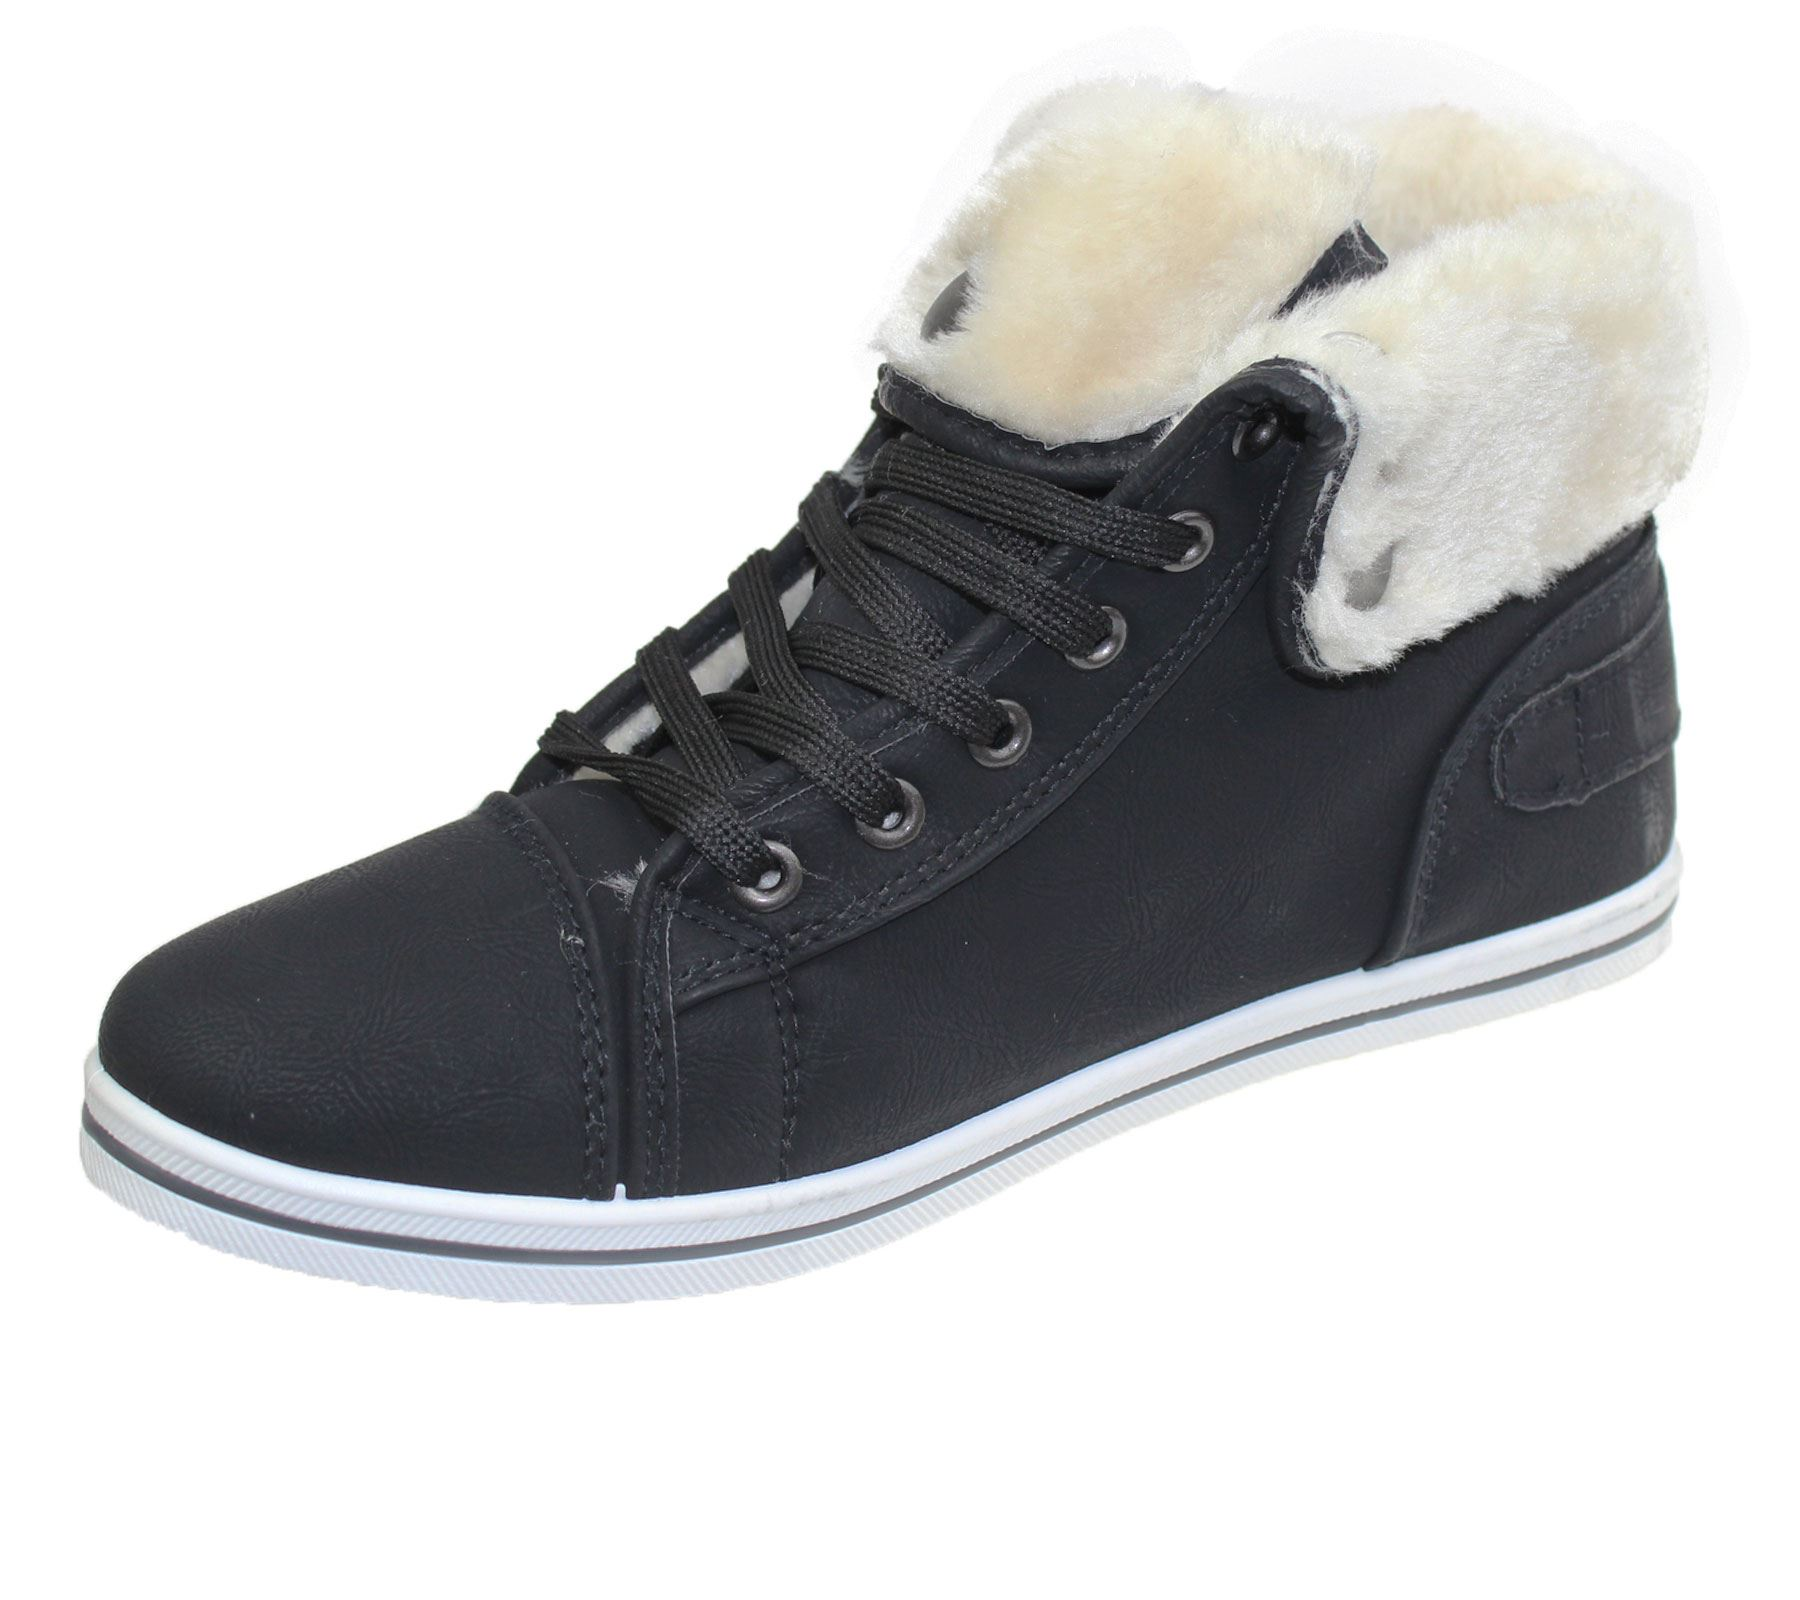 Girls-Boots-Womens-Warm-Lined-High-Top-Ankle-Trainer-Ladies-Winter-Shoes-Size miniatura 83